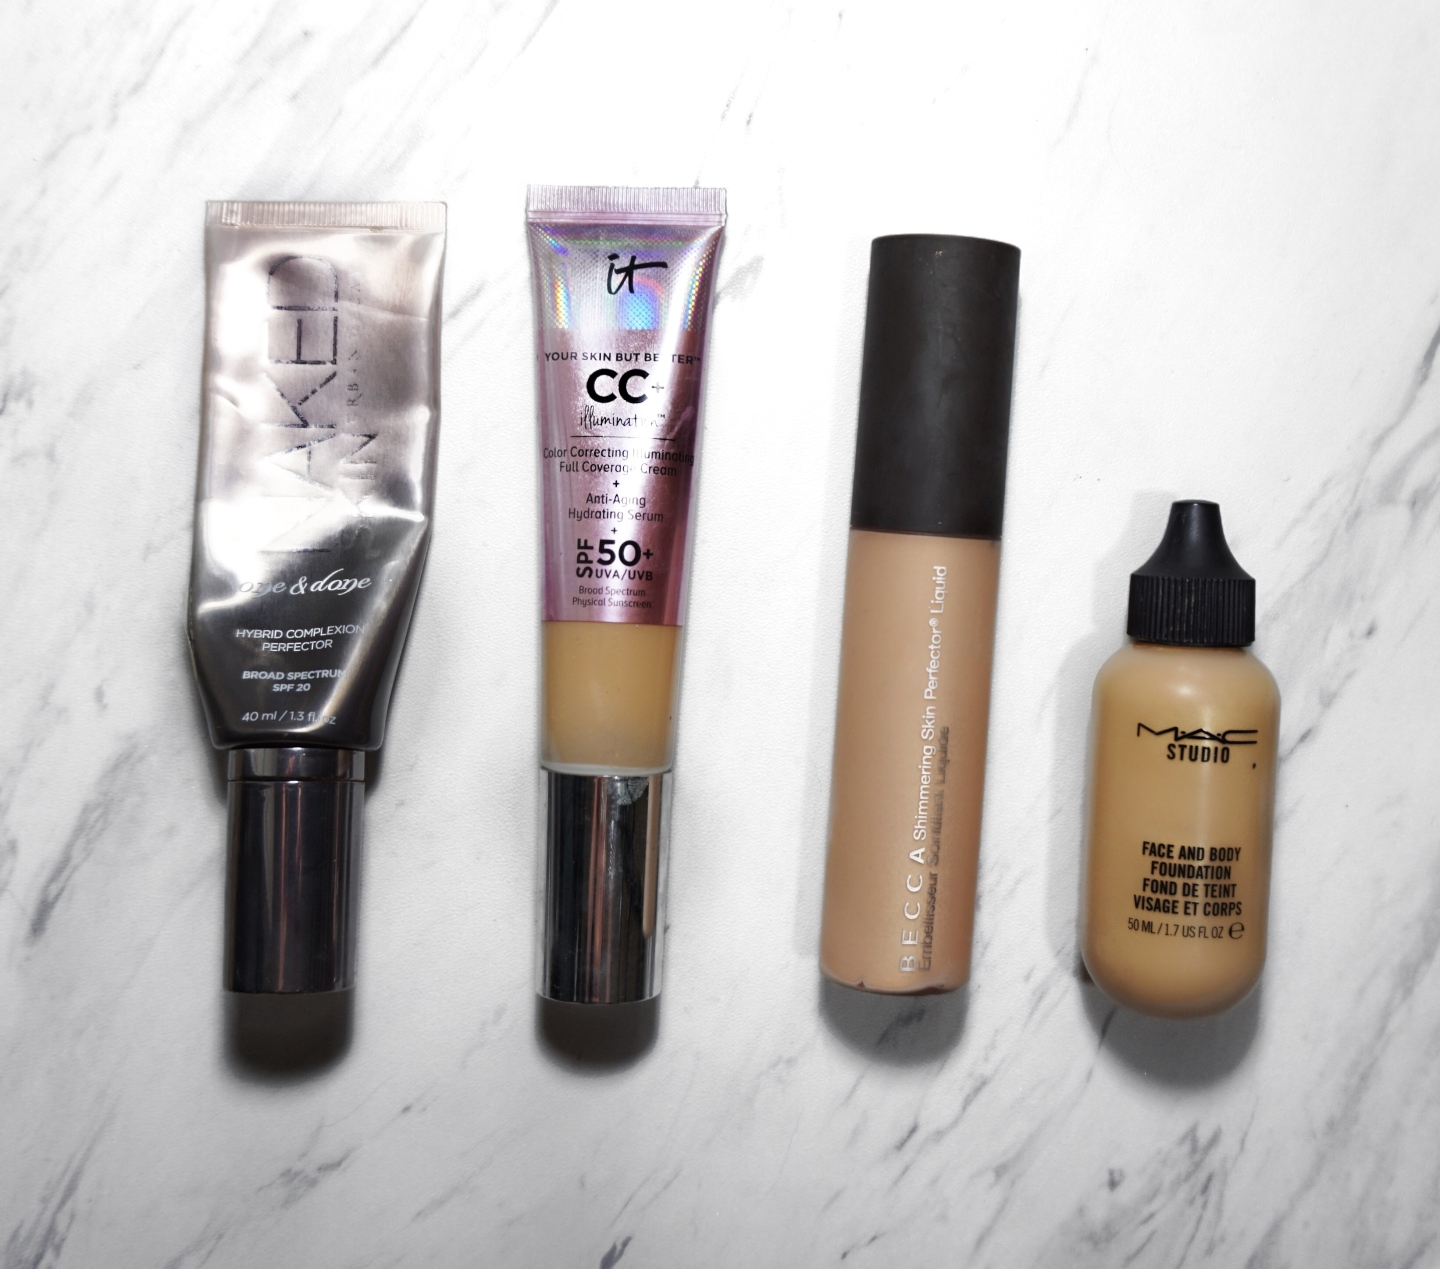 Light weight foundations oily skin foundation